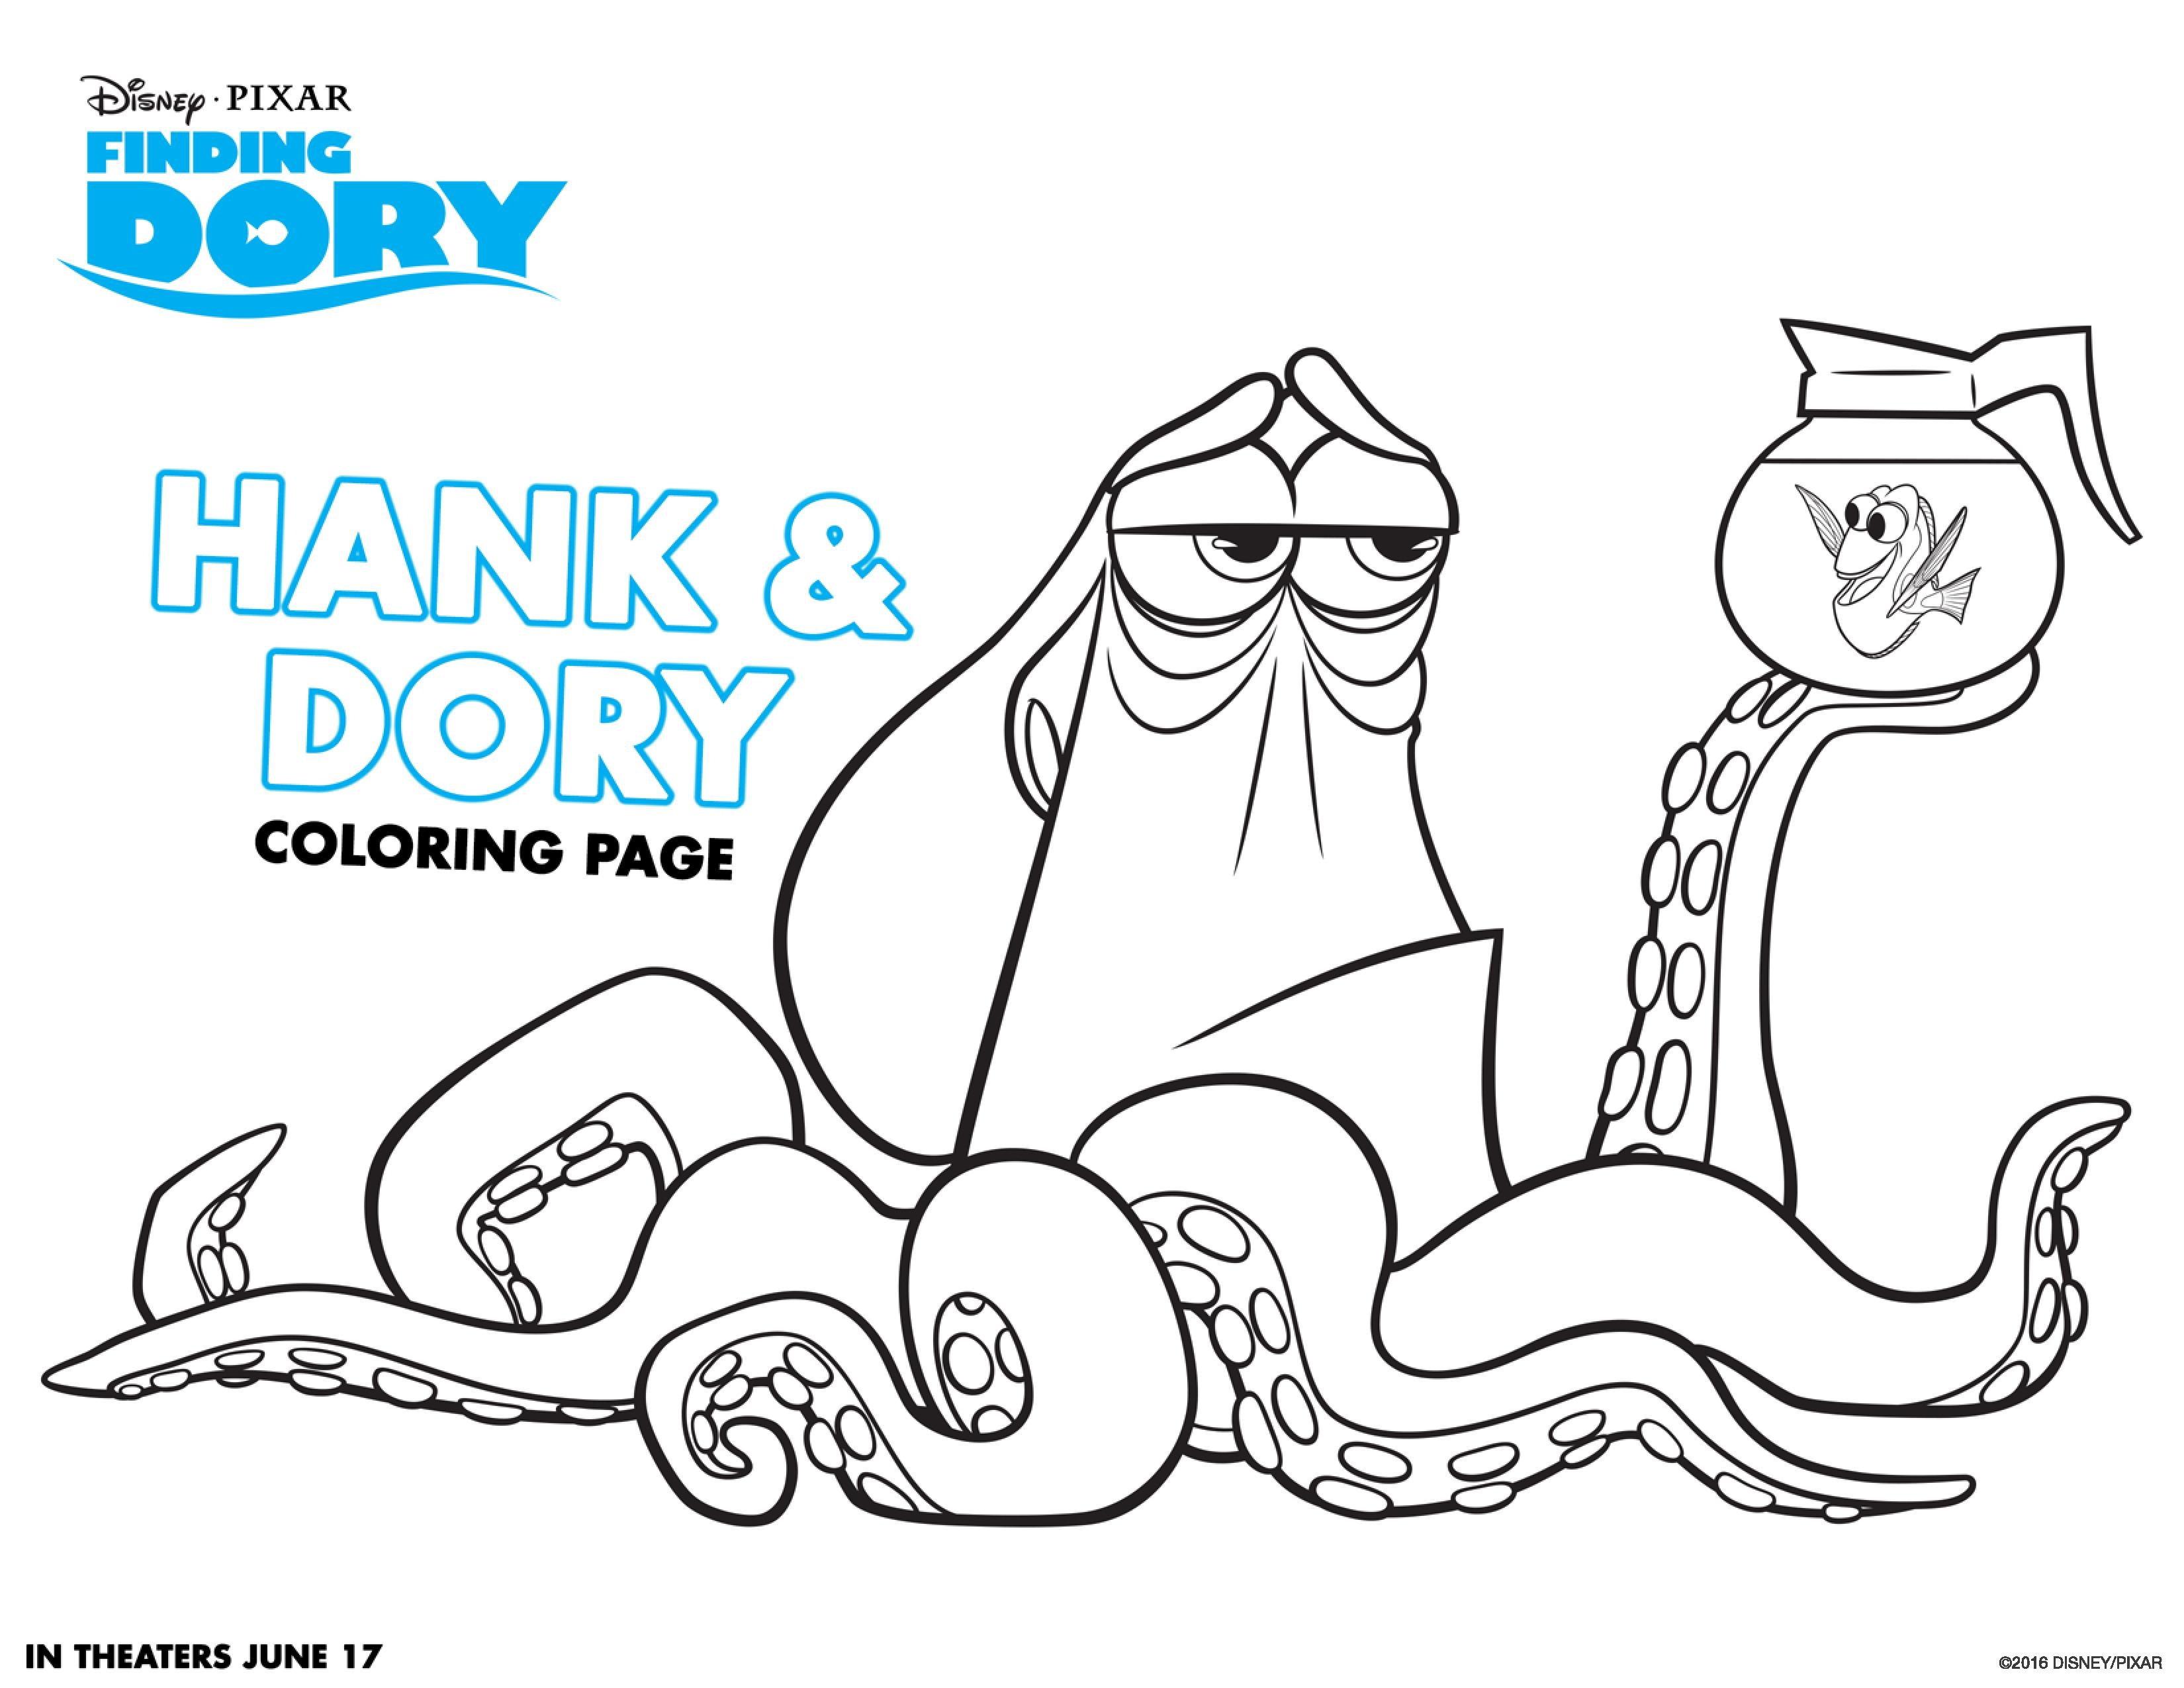 dory coloring pages - finding dory coloring pages and activity sheets